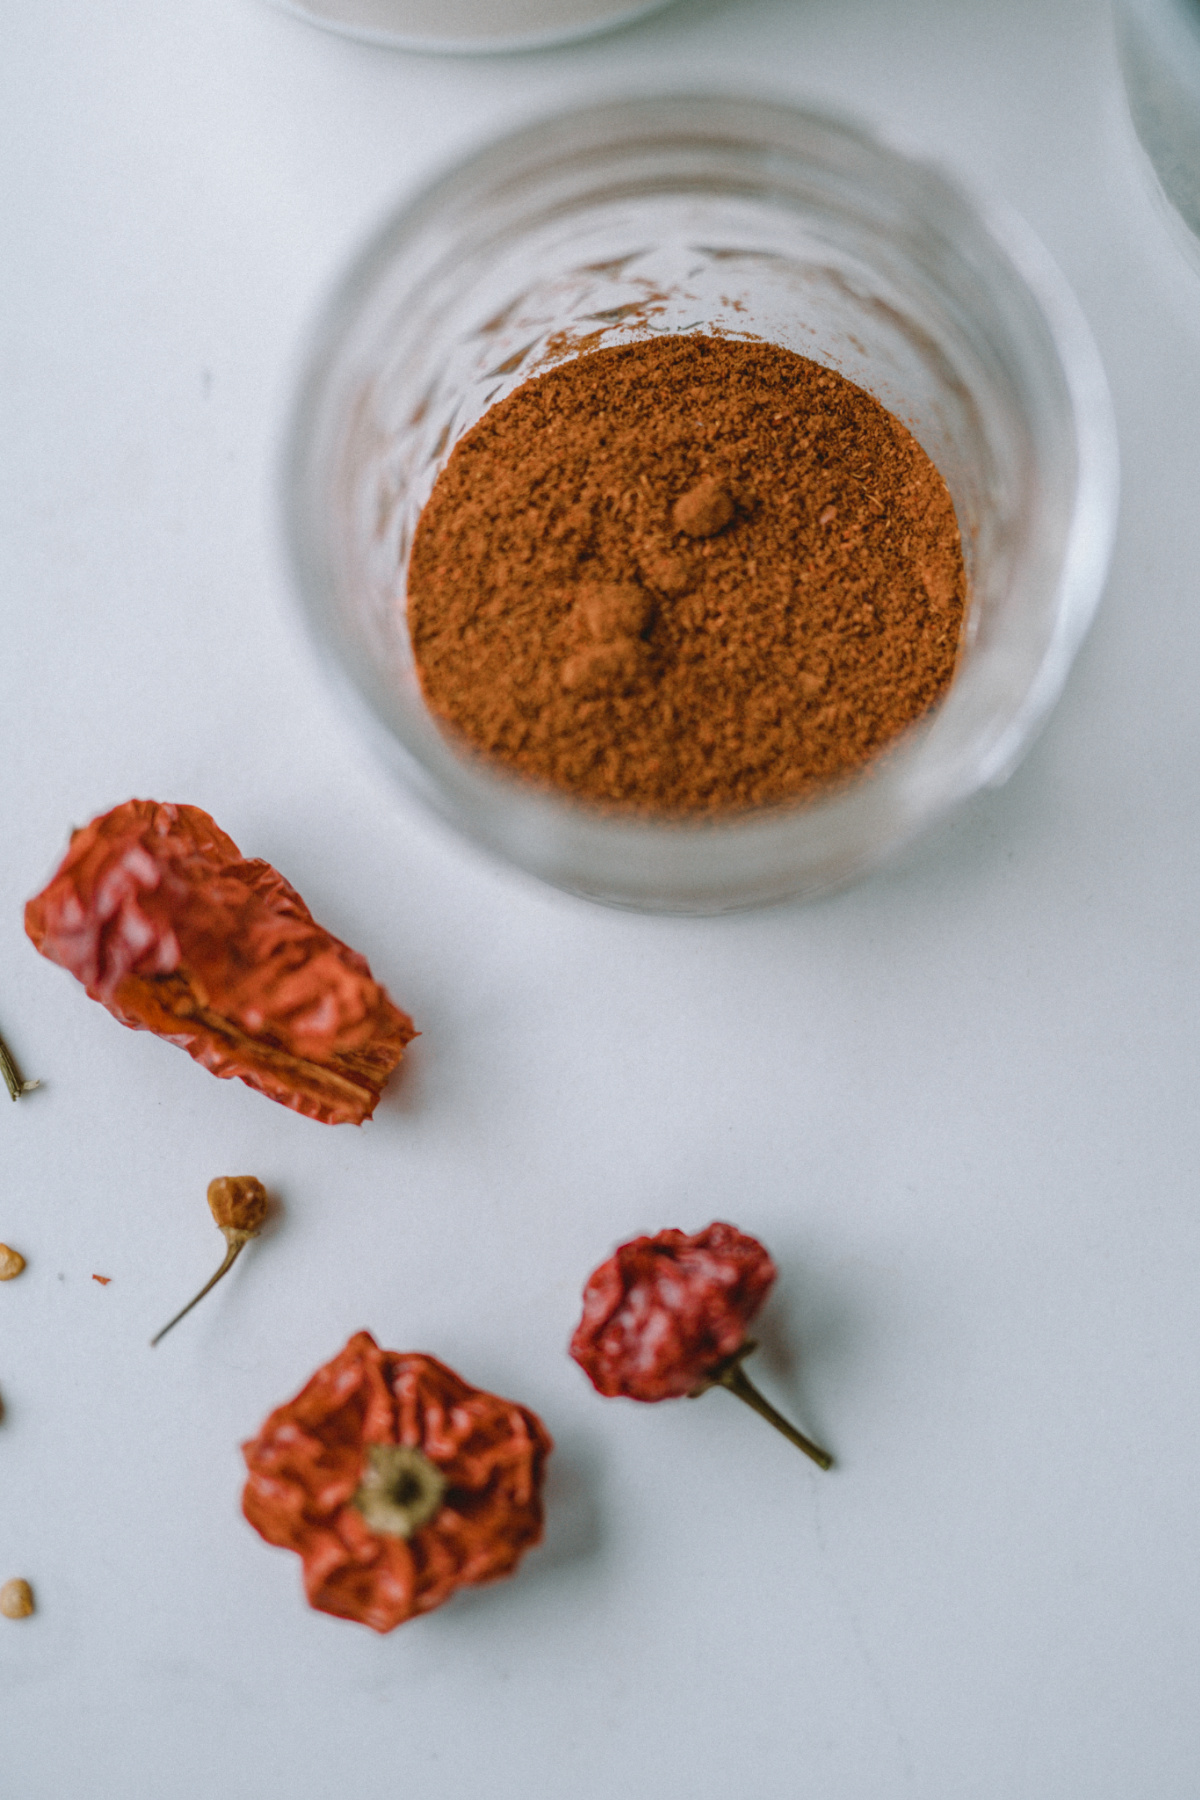 powdered cayenne in a glass bowl with dried cayenne on the table next to it